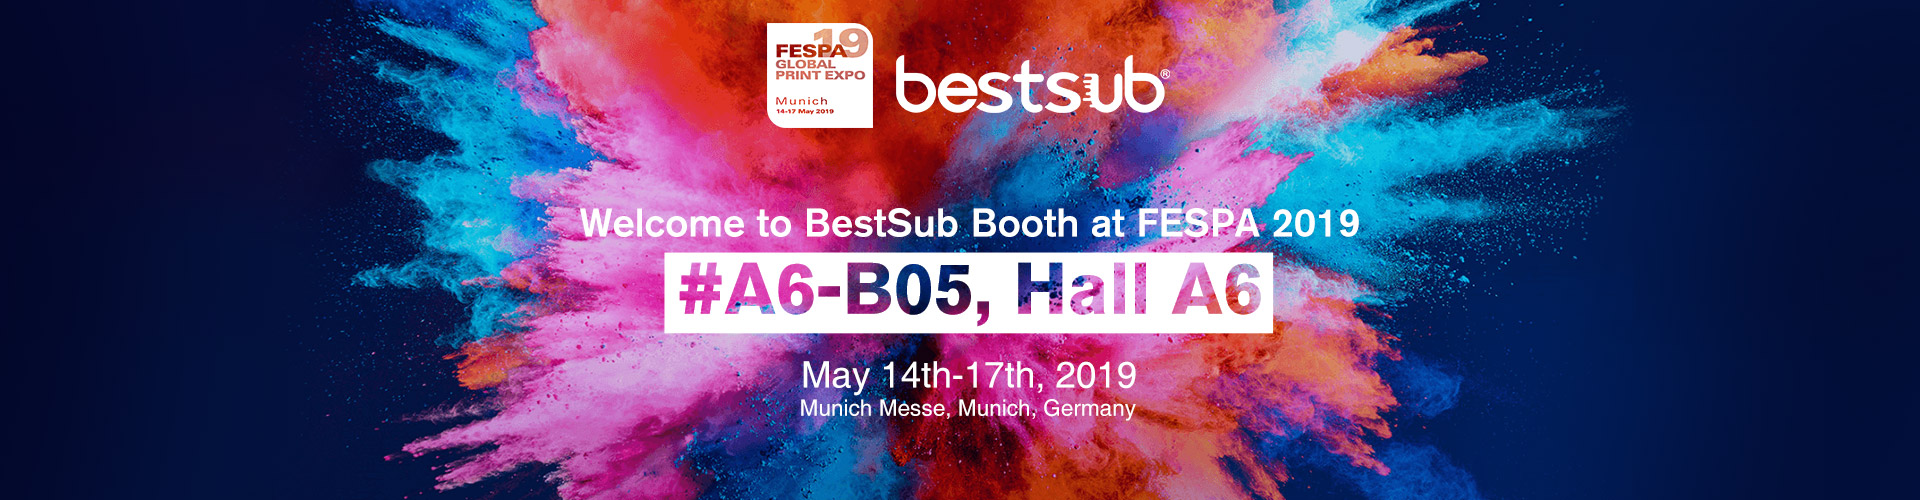 2019-3-8_Welcome_to_BestSub_Booth_at_FESPA_2019_A6_B05_Hall_A6_NEW_web